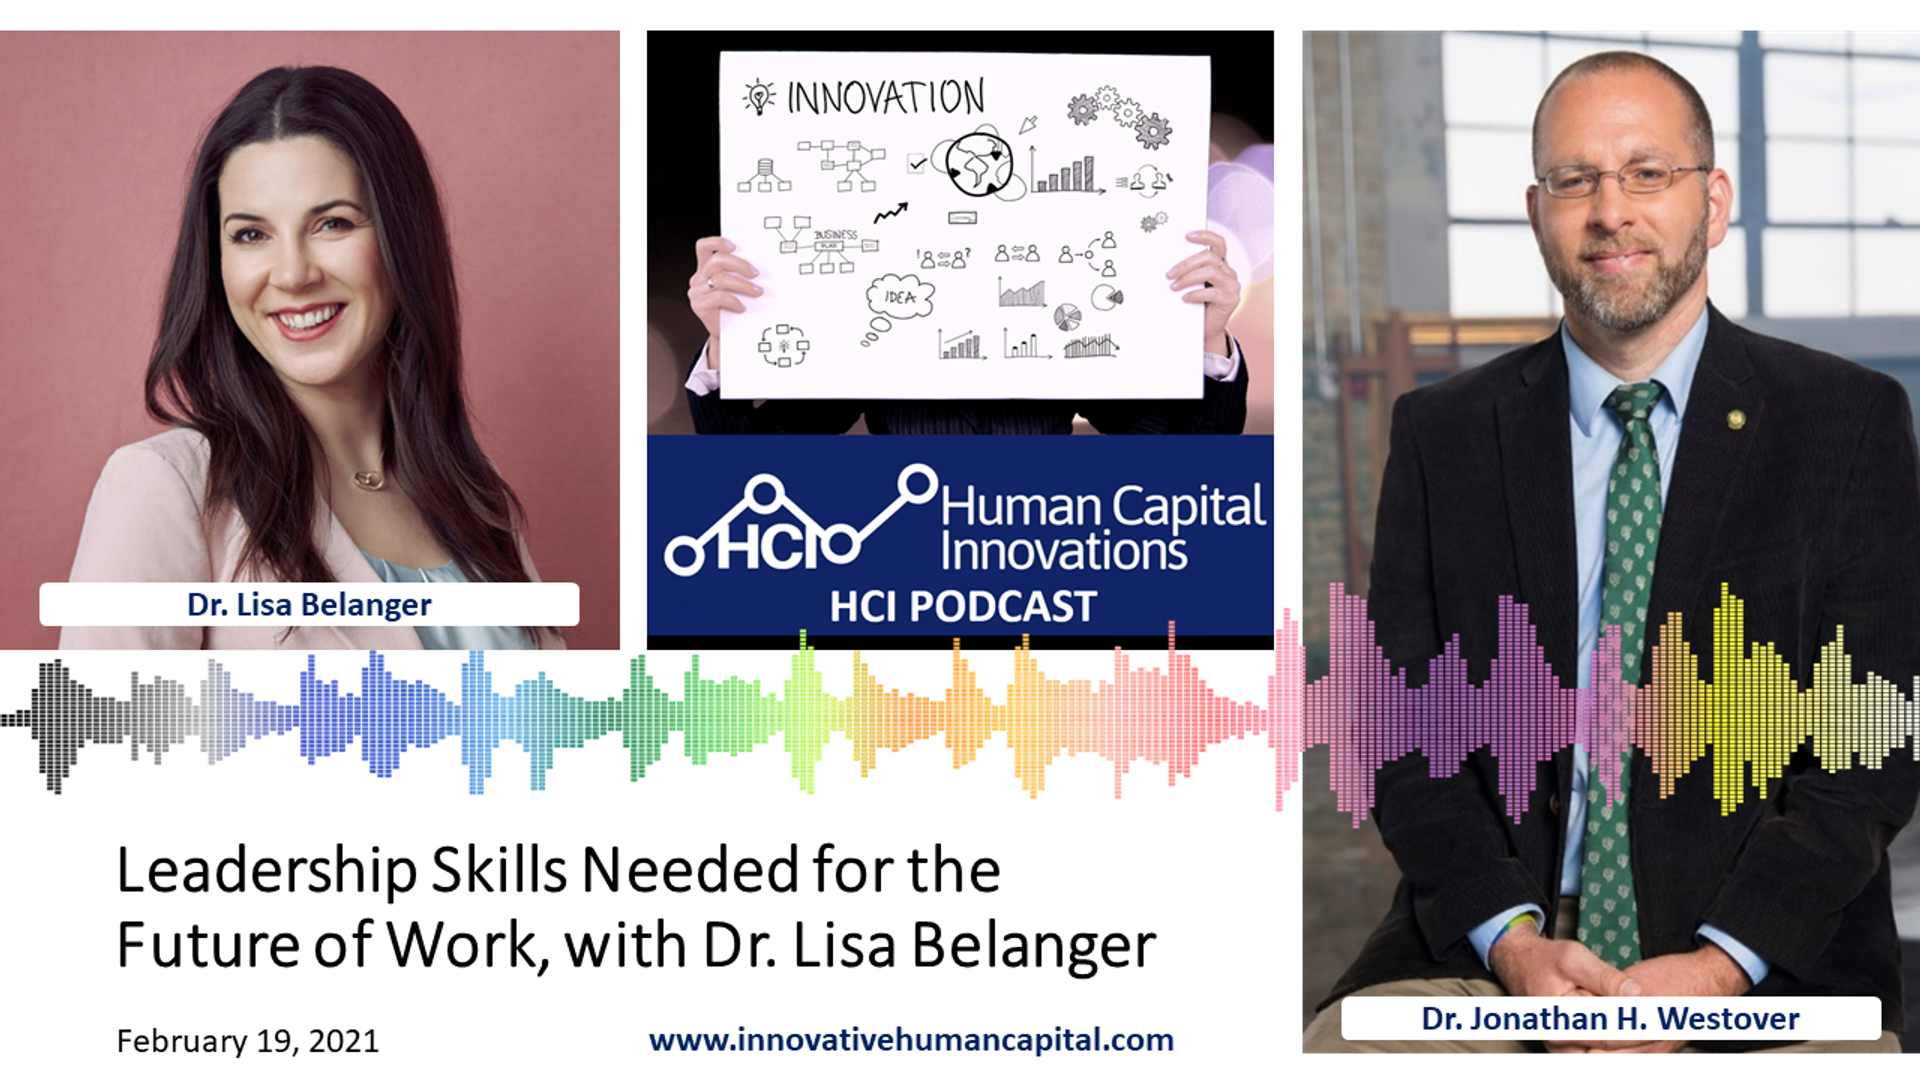 Leadership Skills Needed for the Future of Work